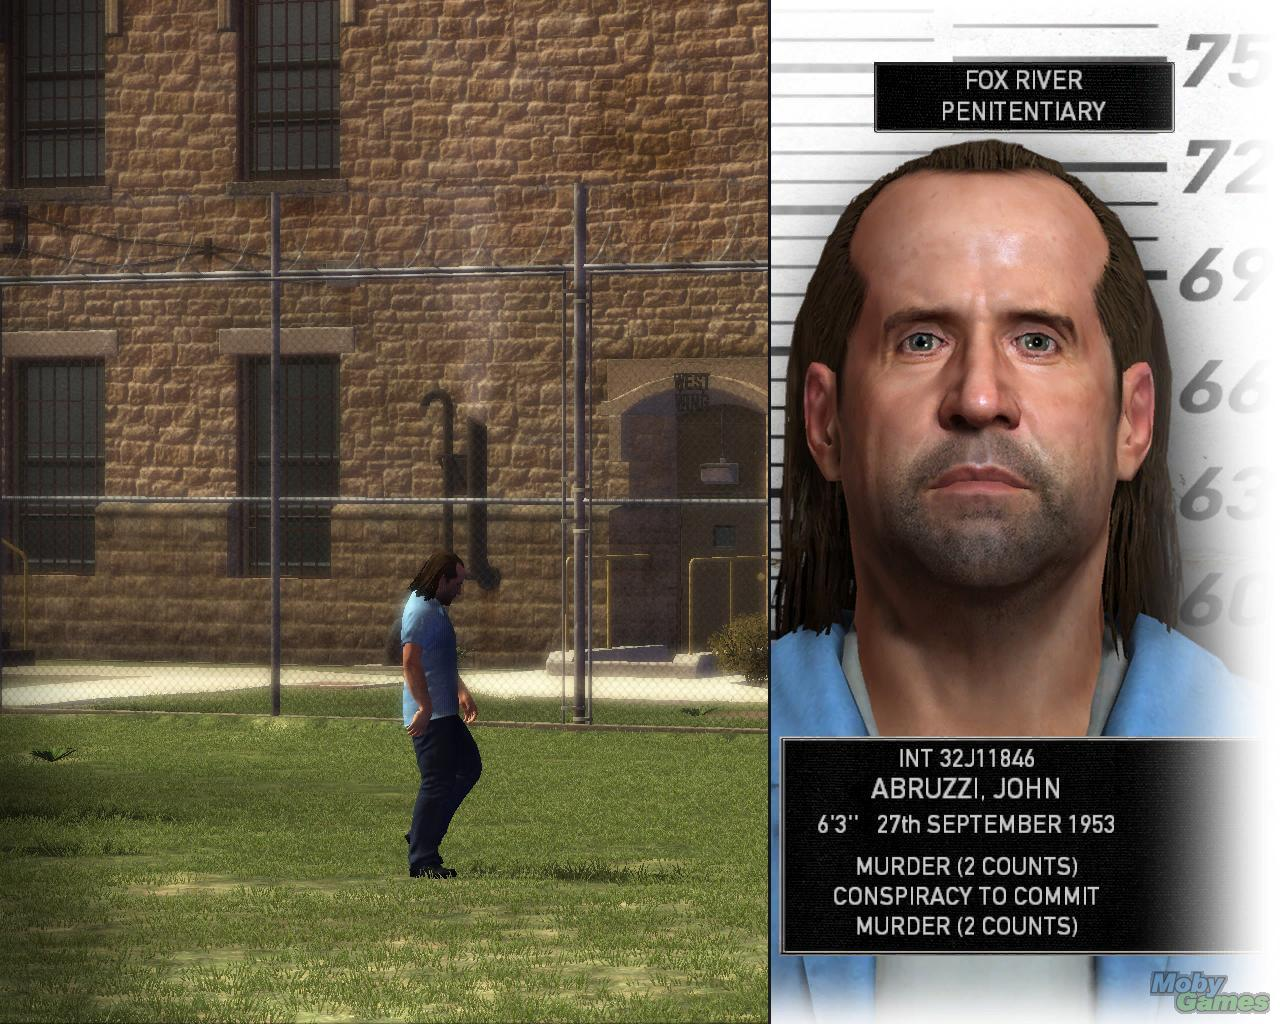 John Abruzzi The Conspiracy Prison Break Wiki Fandom